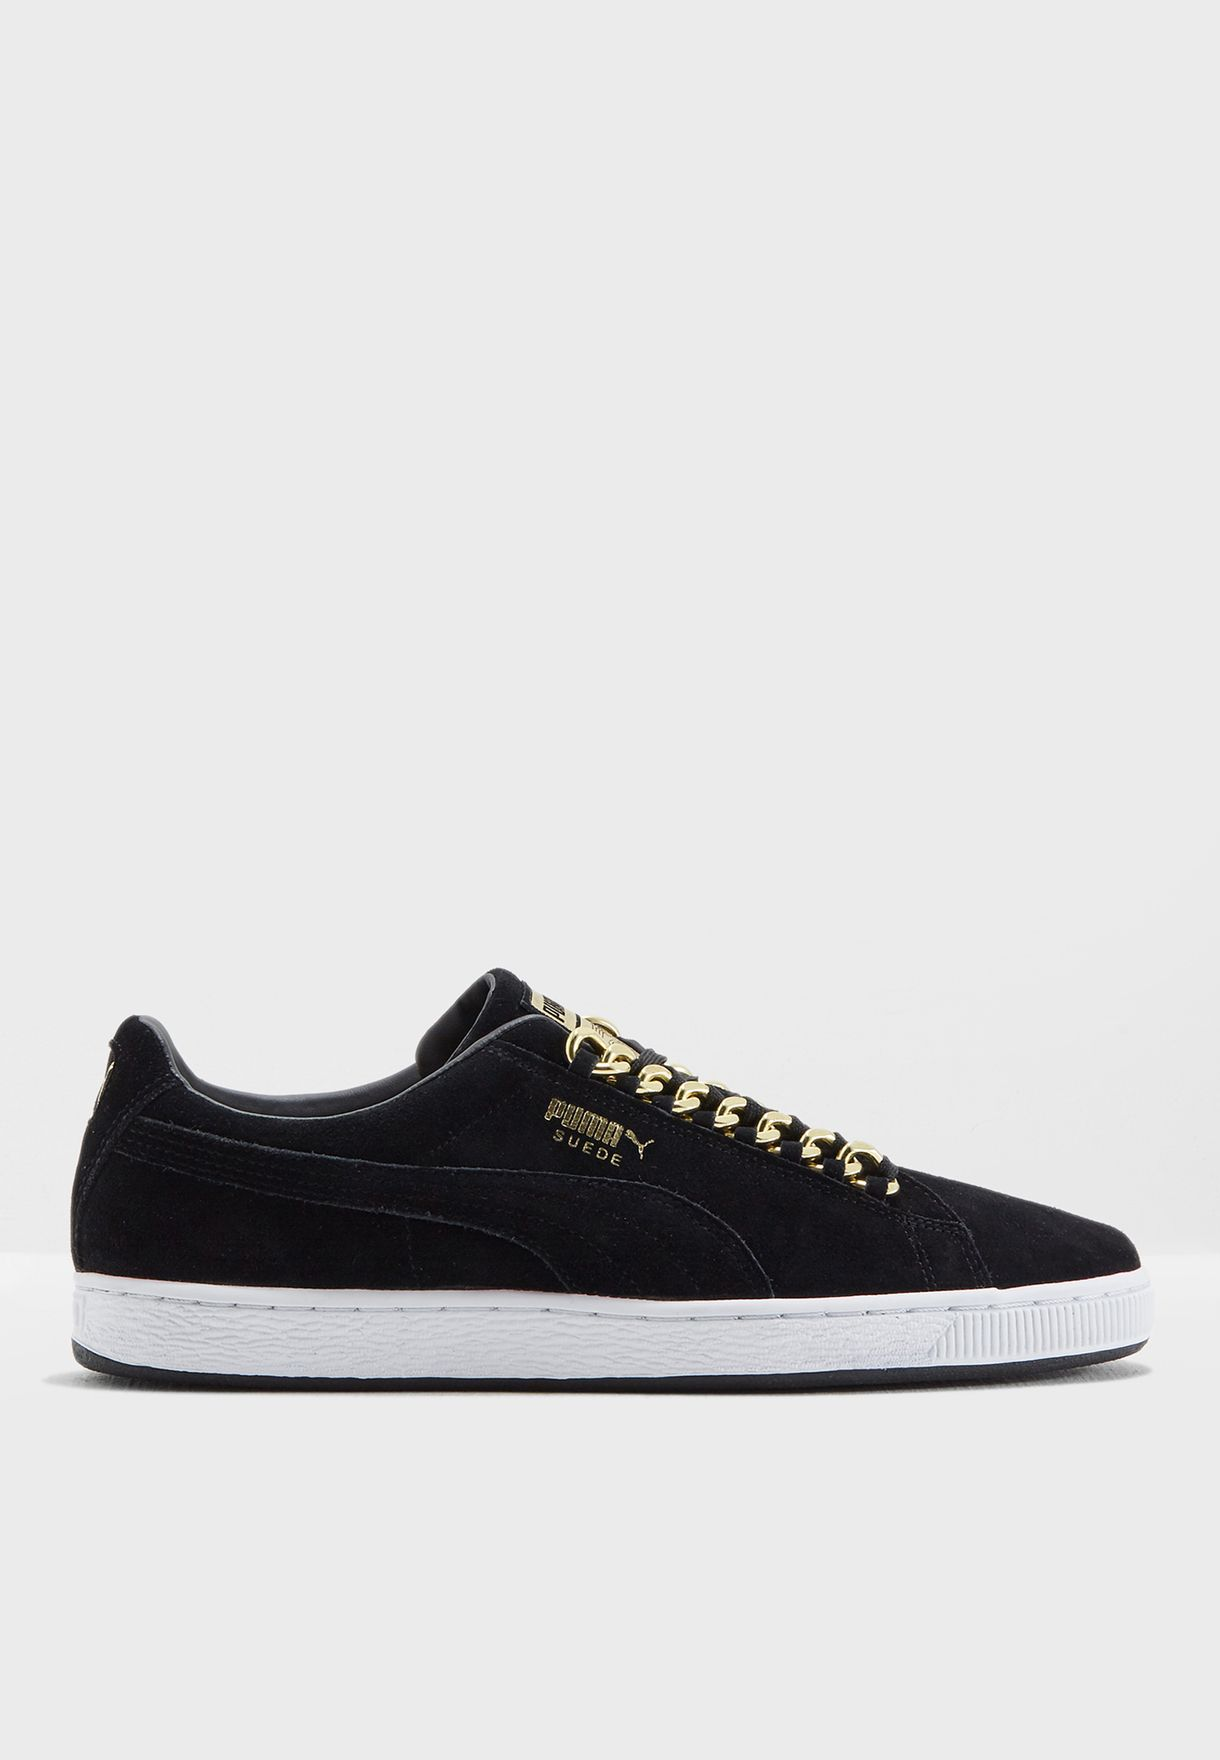 Shop PUMA black Suede Classic x Chain 36739103 for Men in Saudi ... 1df51d115